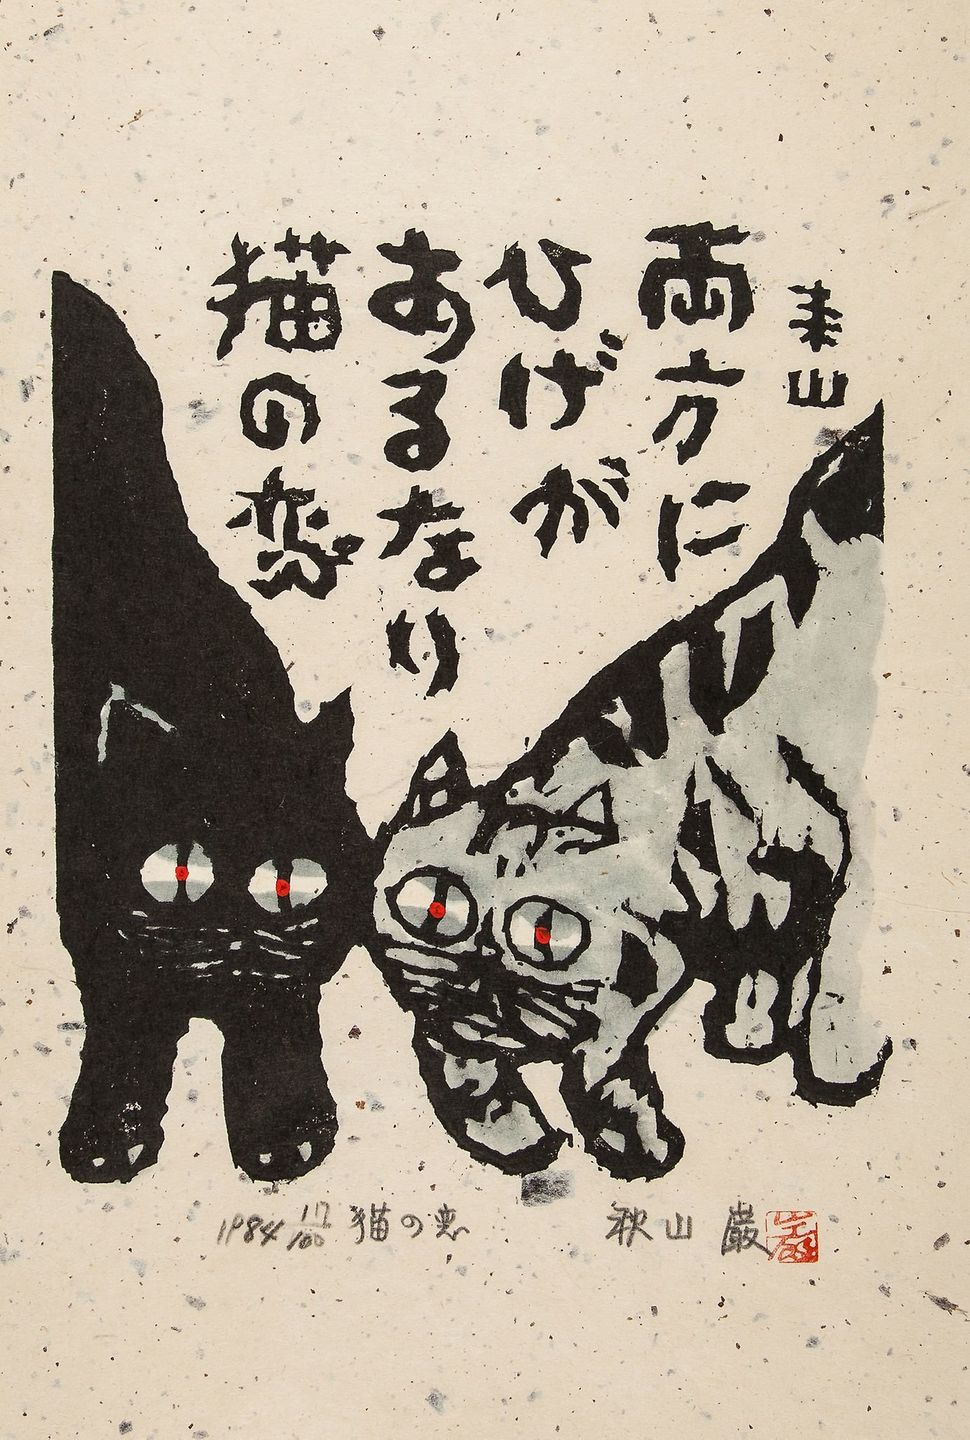 222. Akiyama (Iwao) Two cats, woodblock print in black, red and grey, on flecked paper, 320 x 260mm., signed and dated in pen